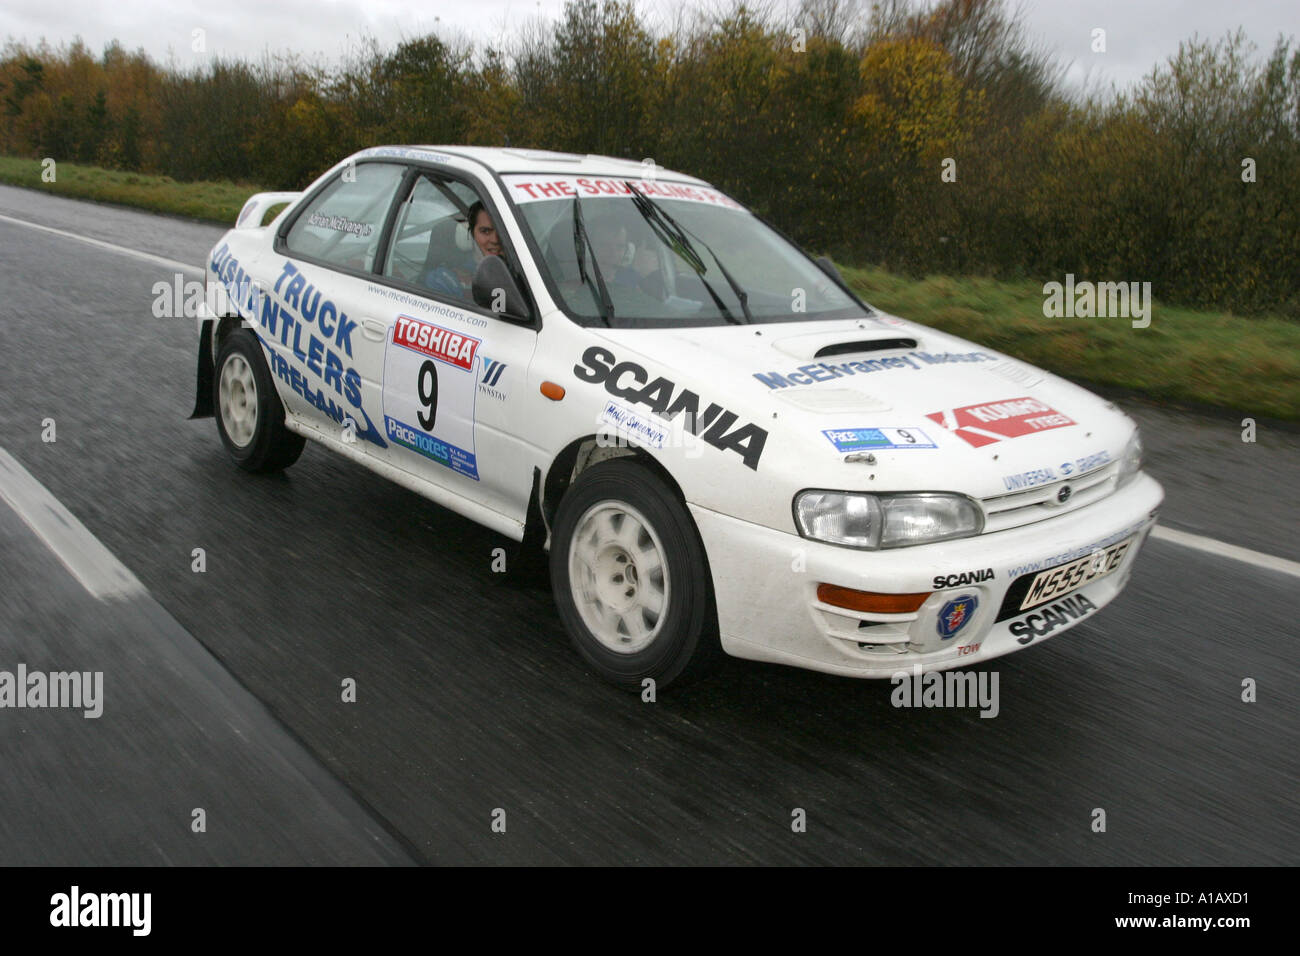 Subaru Impreza Rally Car On The M2 Outside Ballymena On The Way To